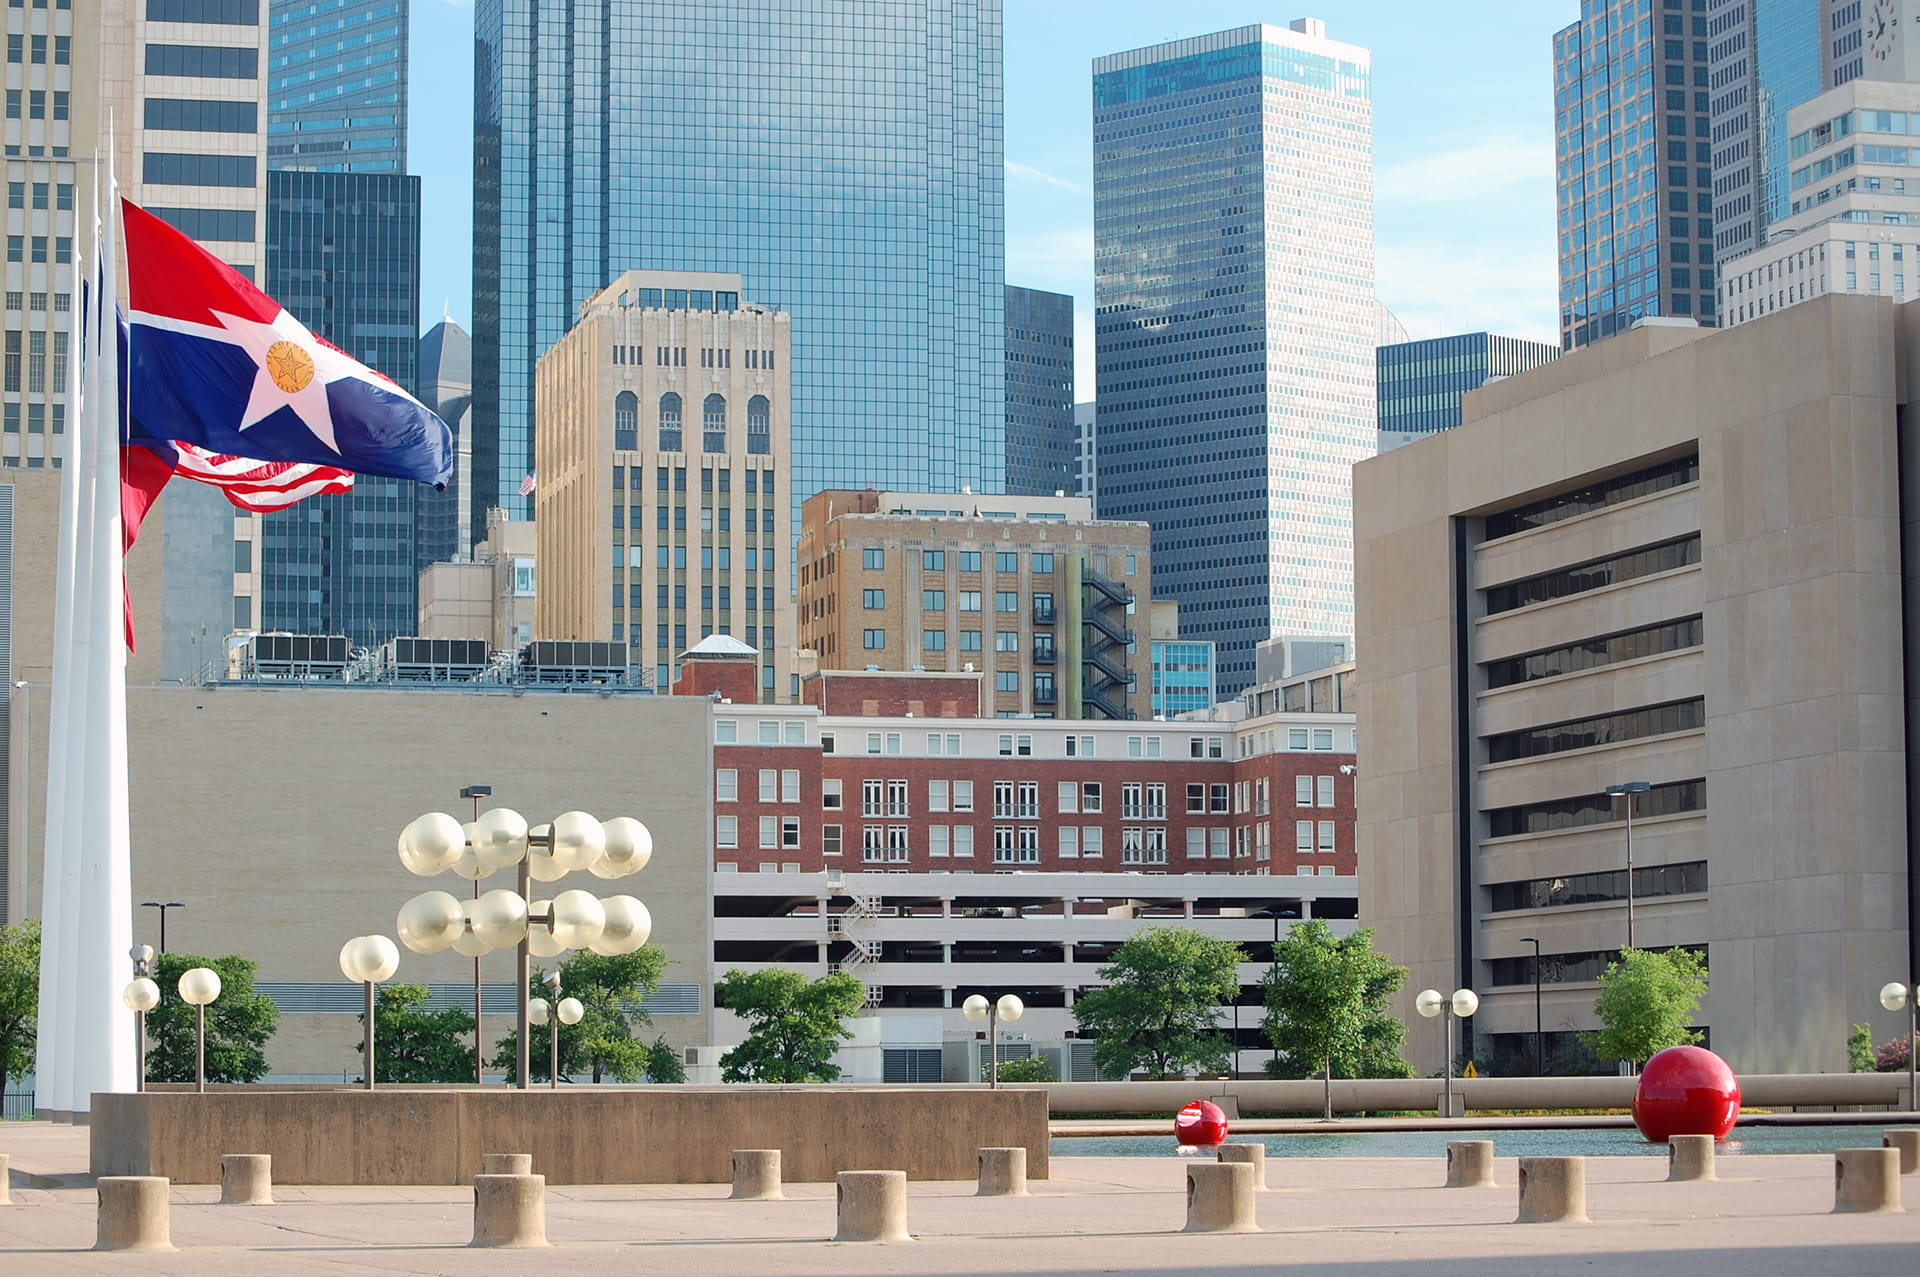 Dallas City Hall Square